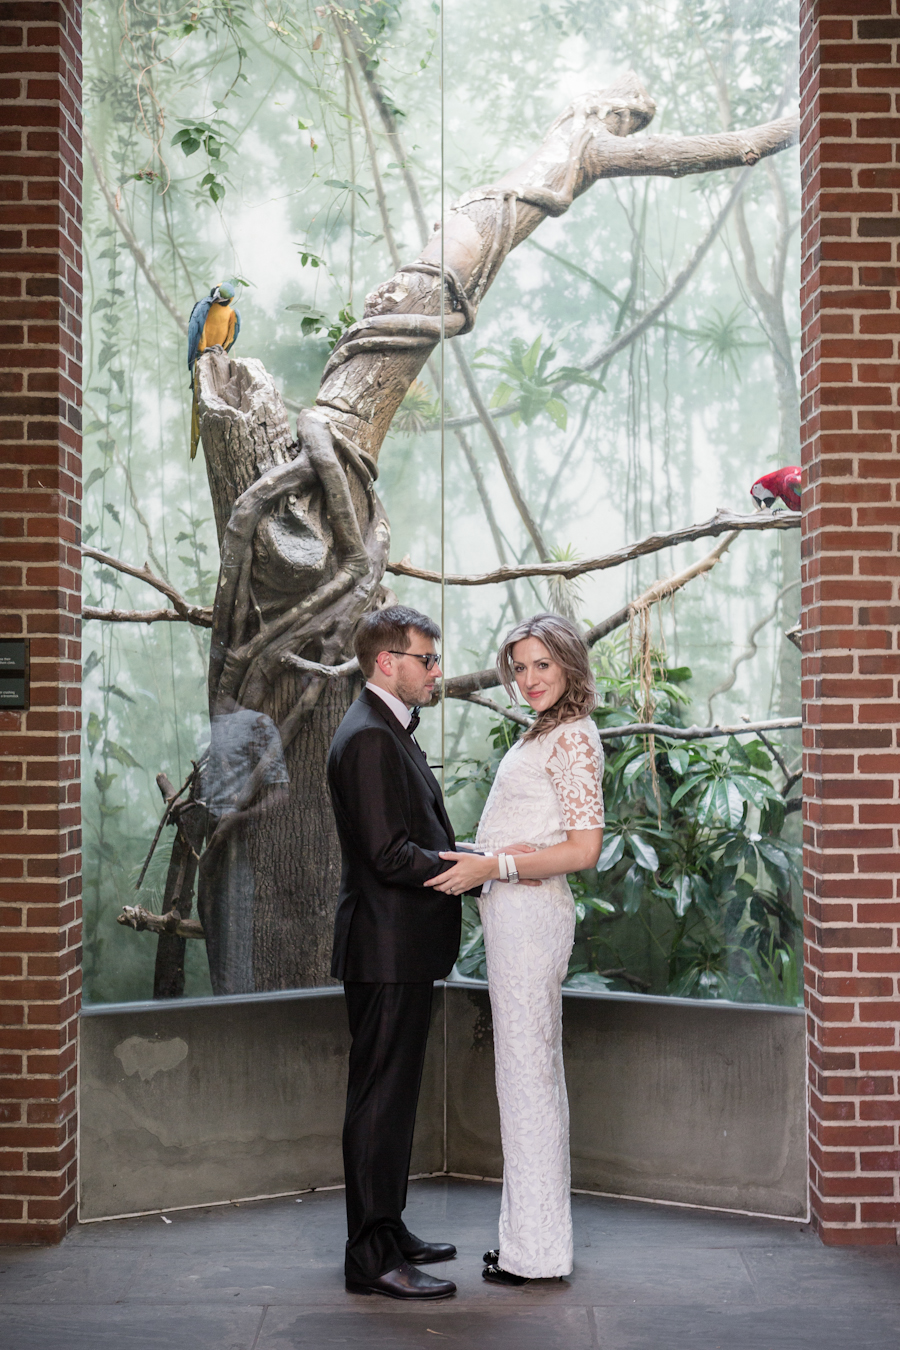 central park zoo wedding ang weddings and events-1.jpg